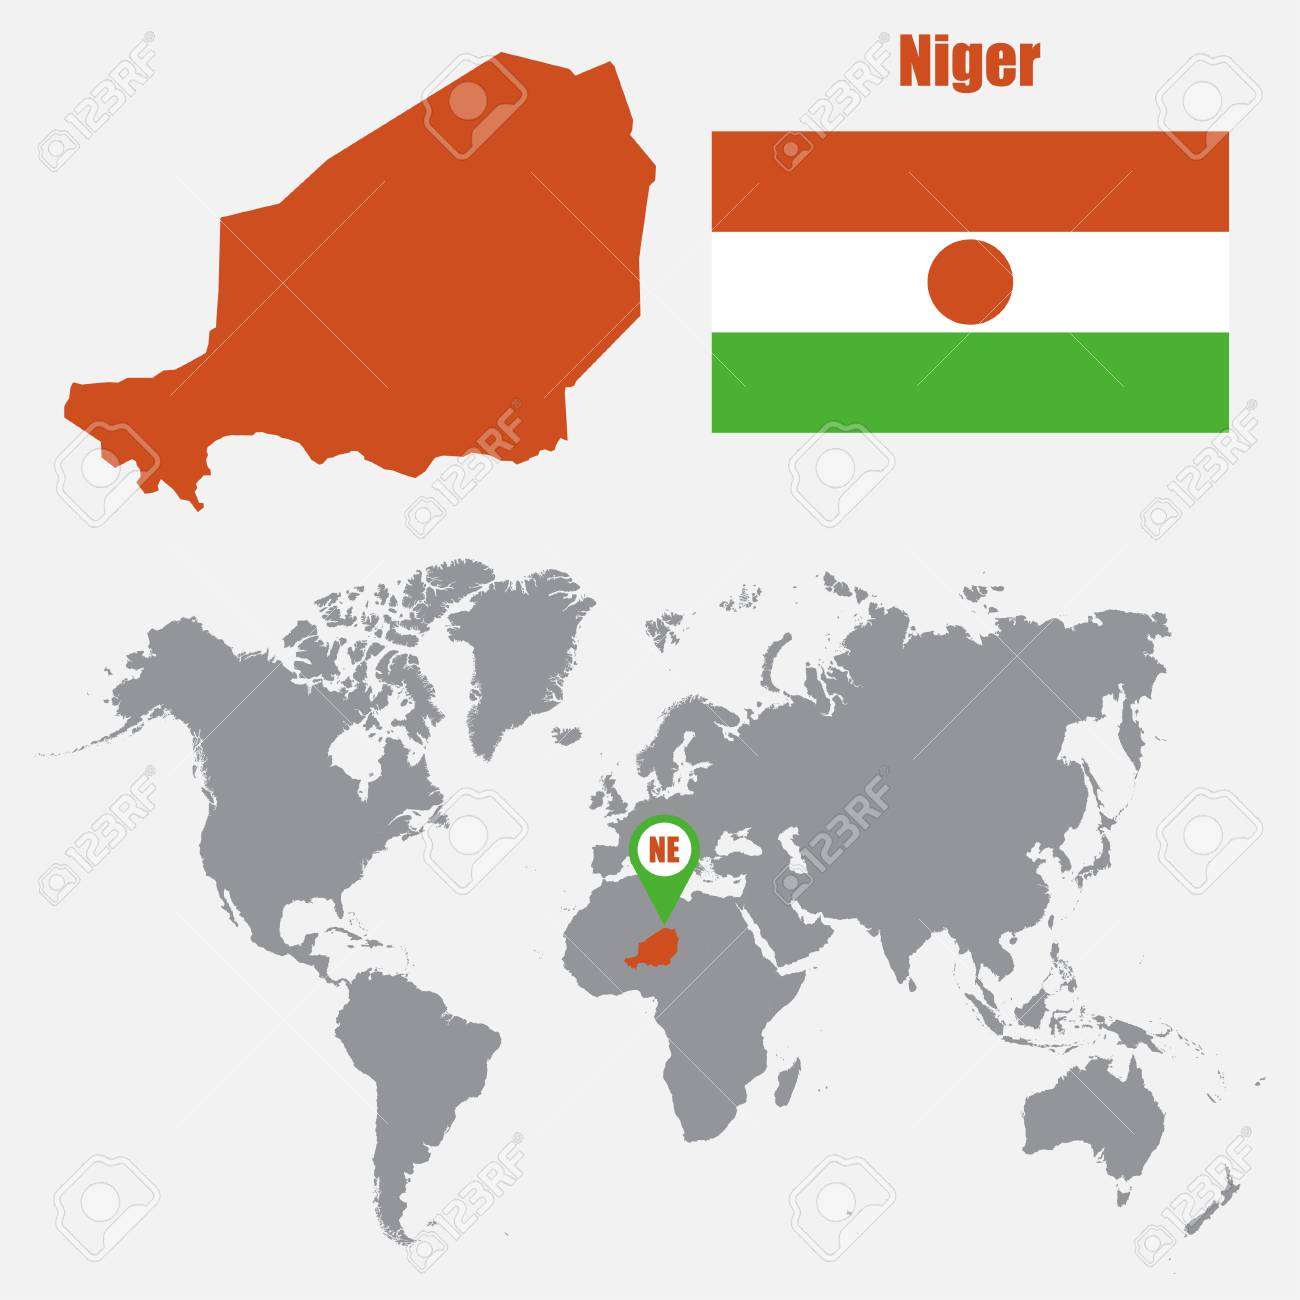 Picture of: Niger Map On A World Map With Flag And Map Pointer Vector Illustration Royalty Free Cliparts Vectors And Stock Illustration Image 62048709